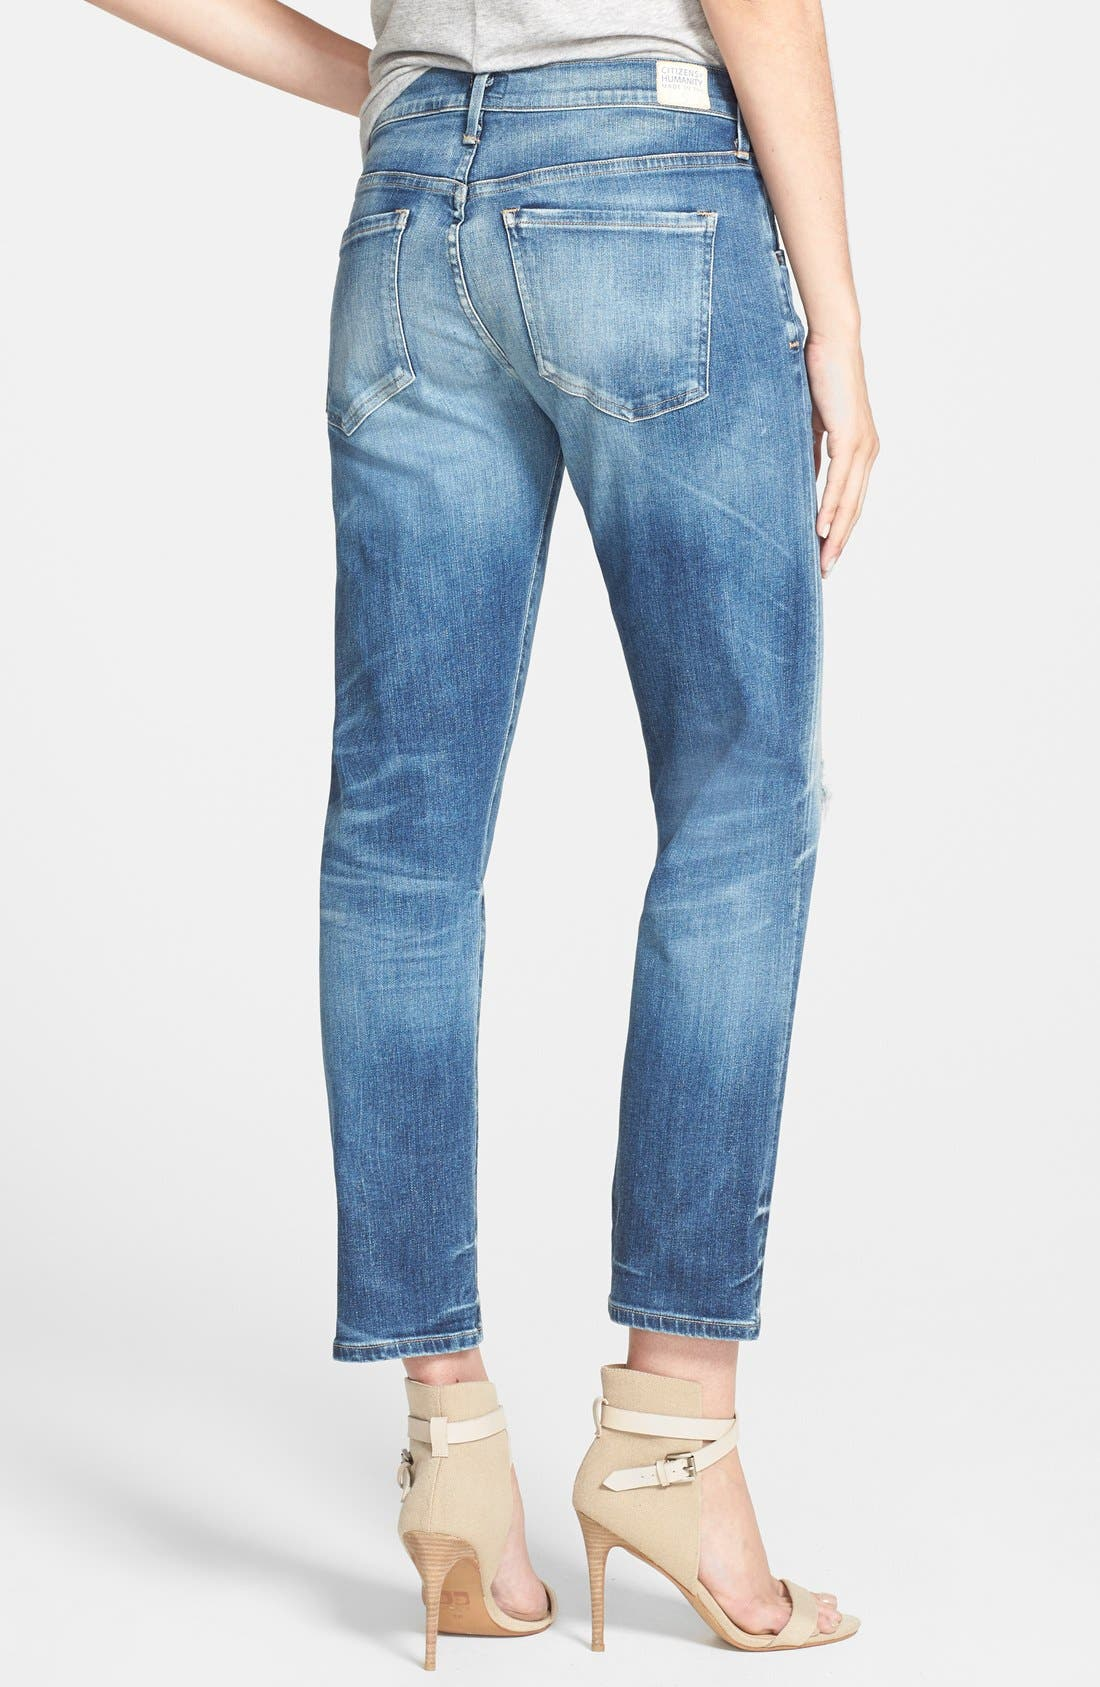 CITIZENS OF HUMANITY,                             'Emerson' Destroyed Slim Boyfriend Jeans,                             Alternate thumbnail 2, color,                             486